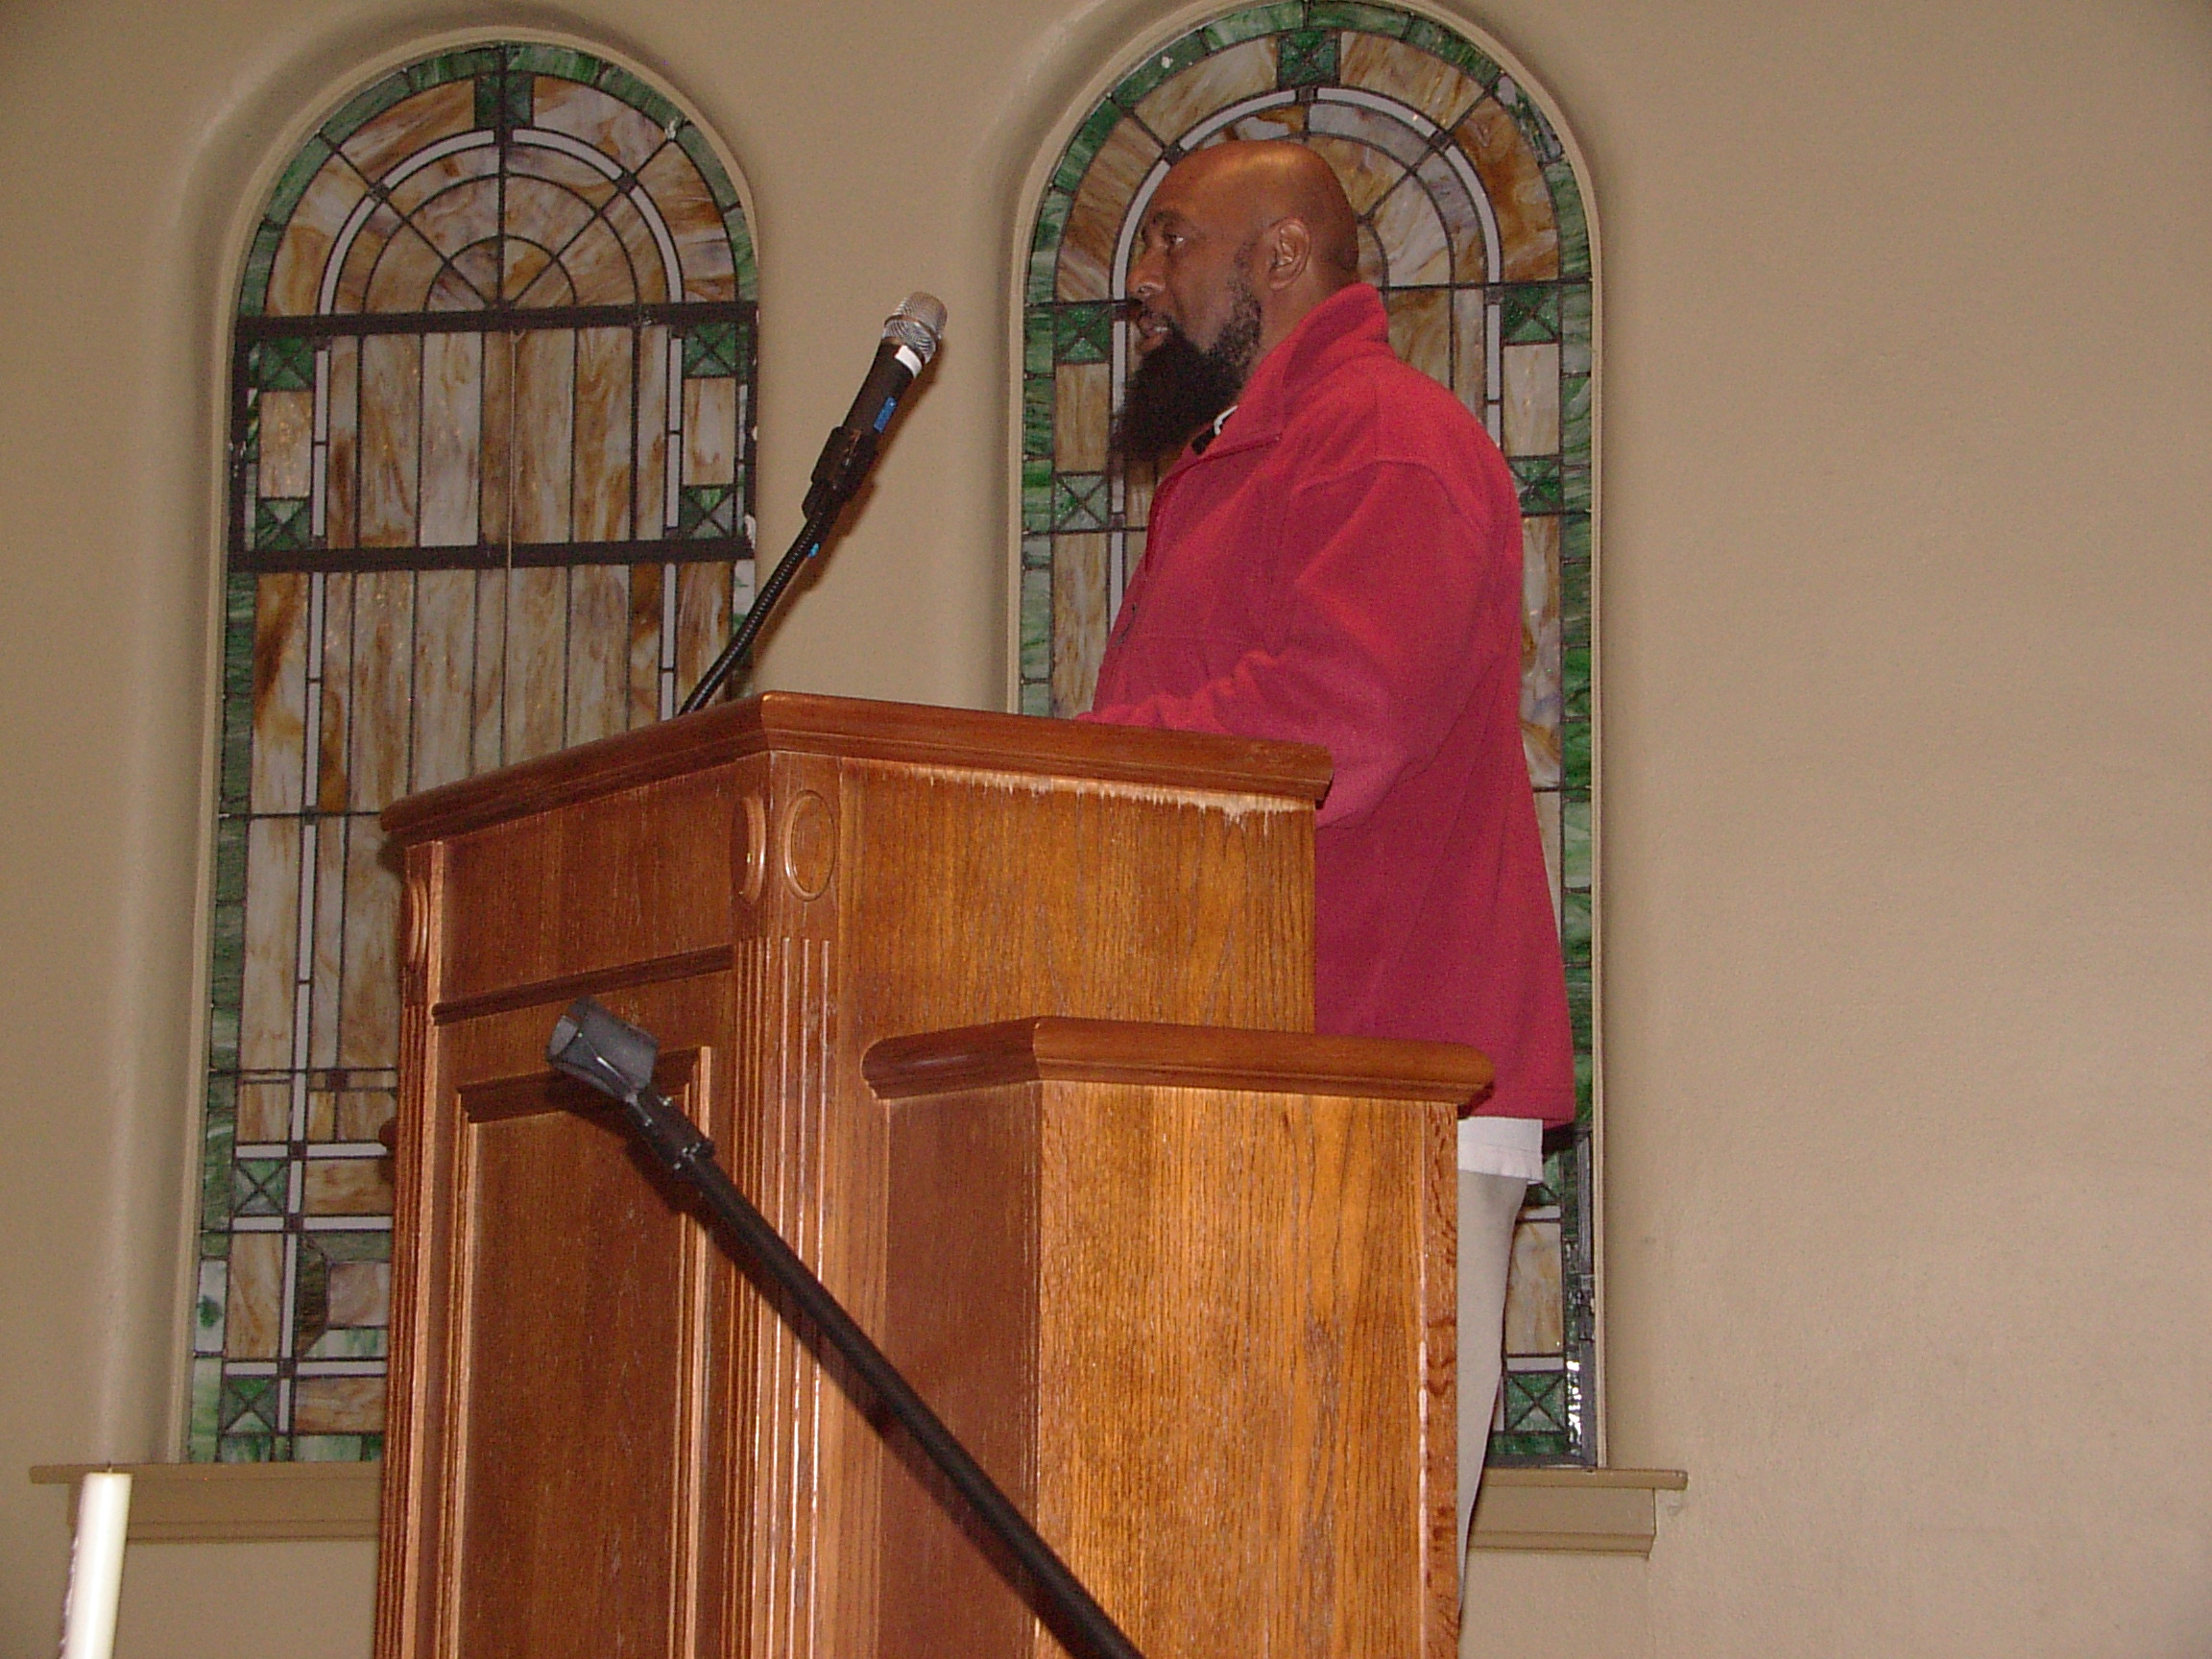 Ralph williams opens the Thanksgiving Service by Welcoming Everyone! November 20, 2018